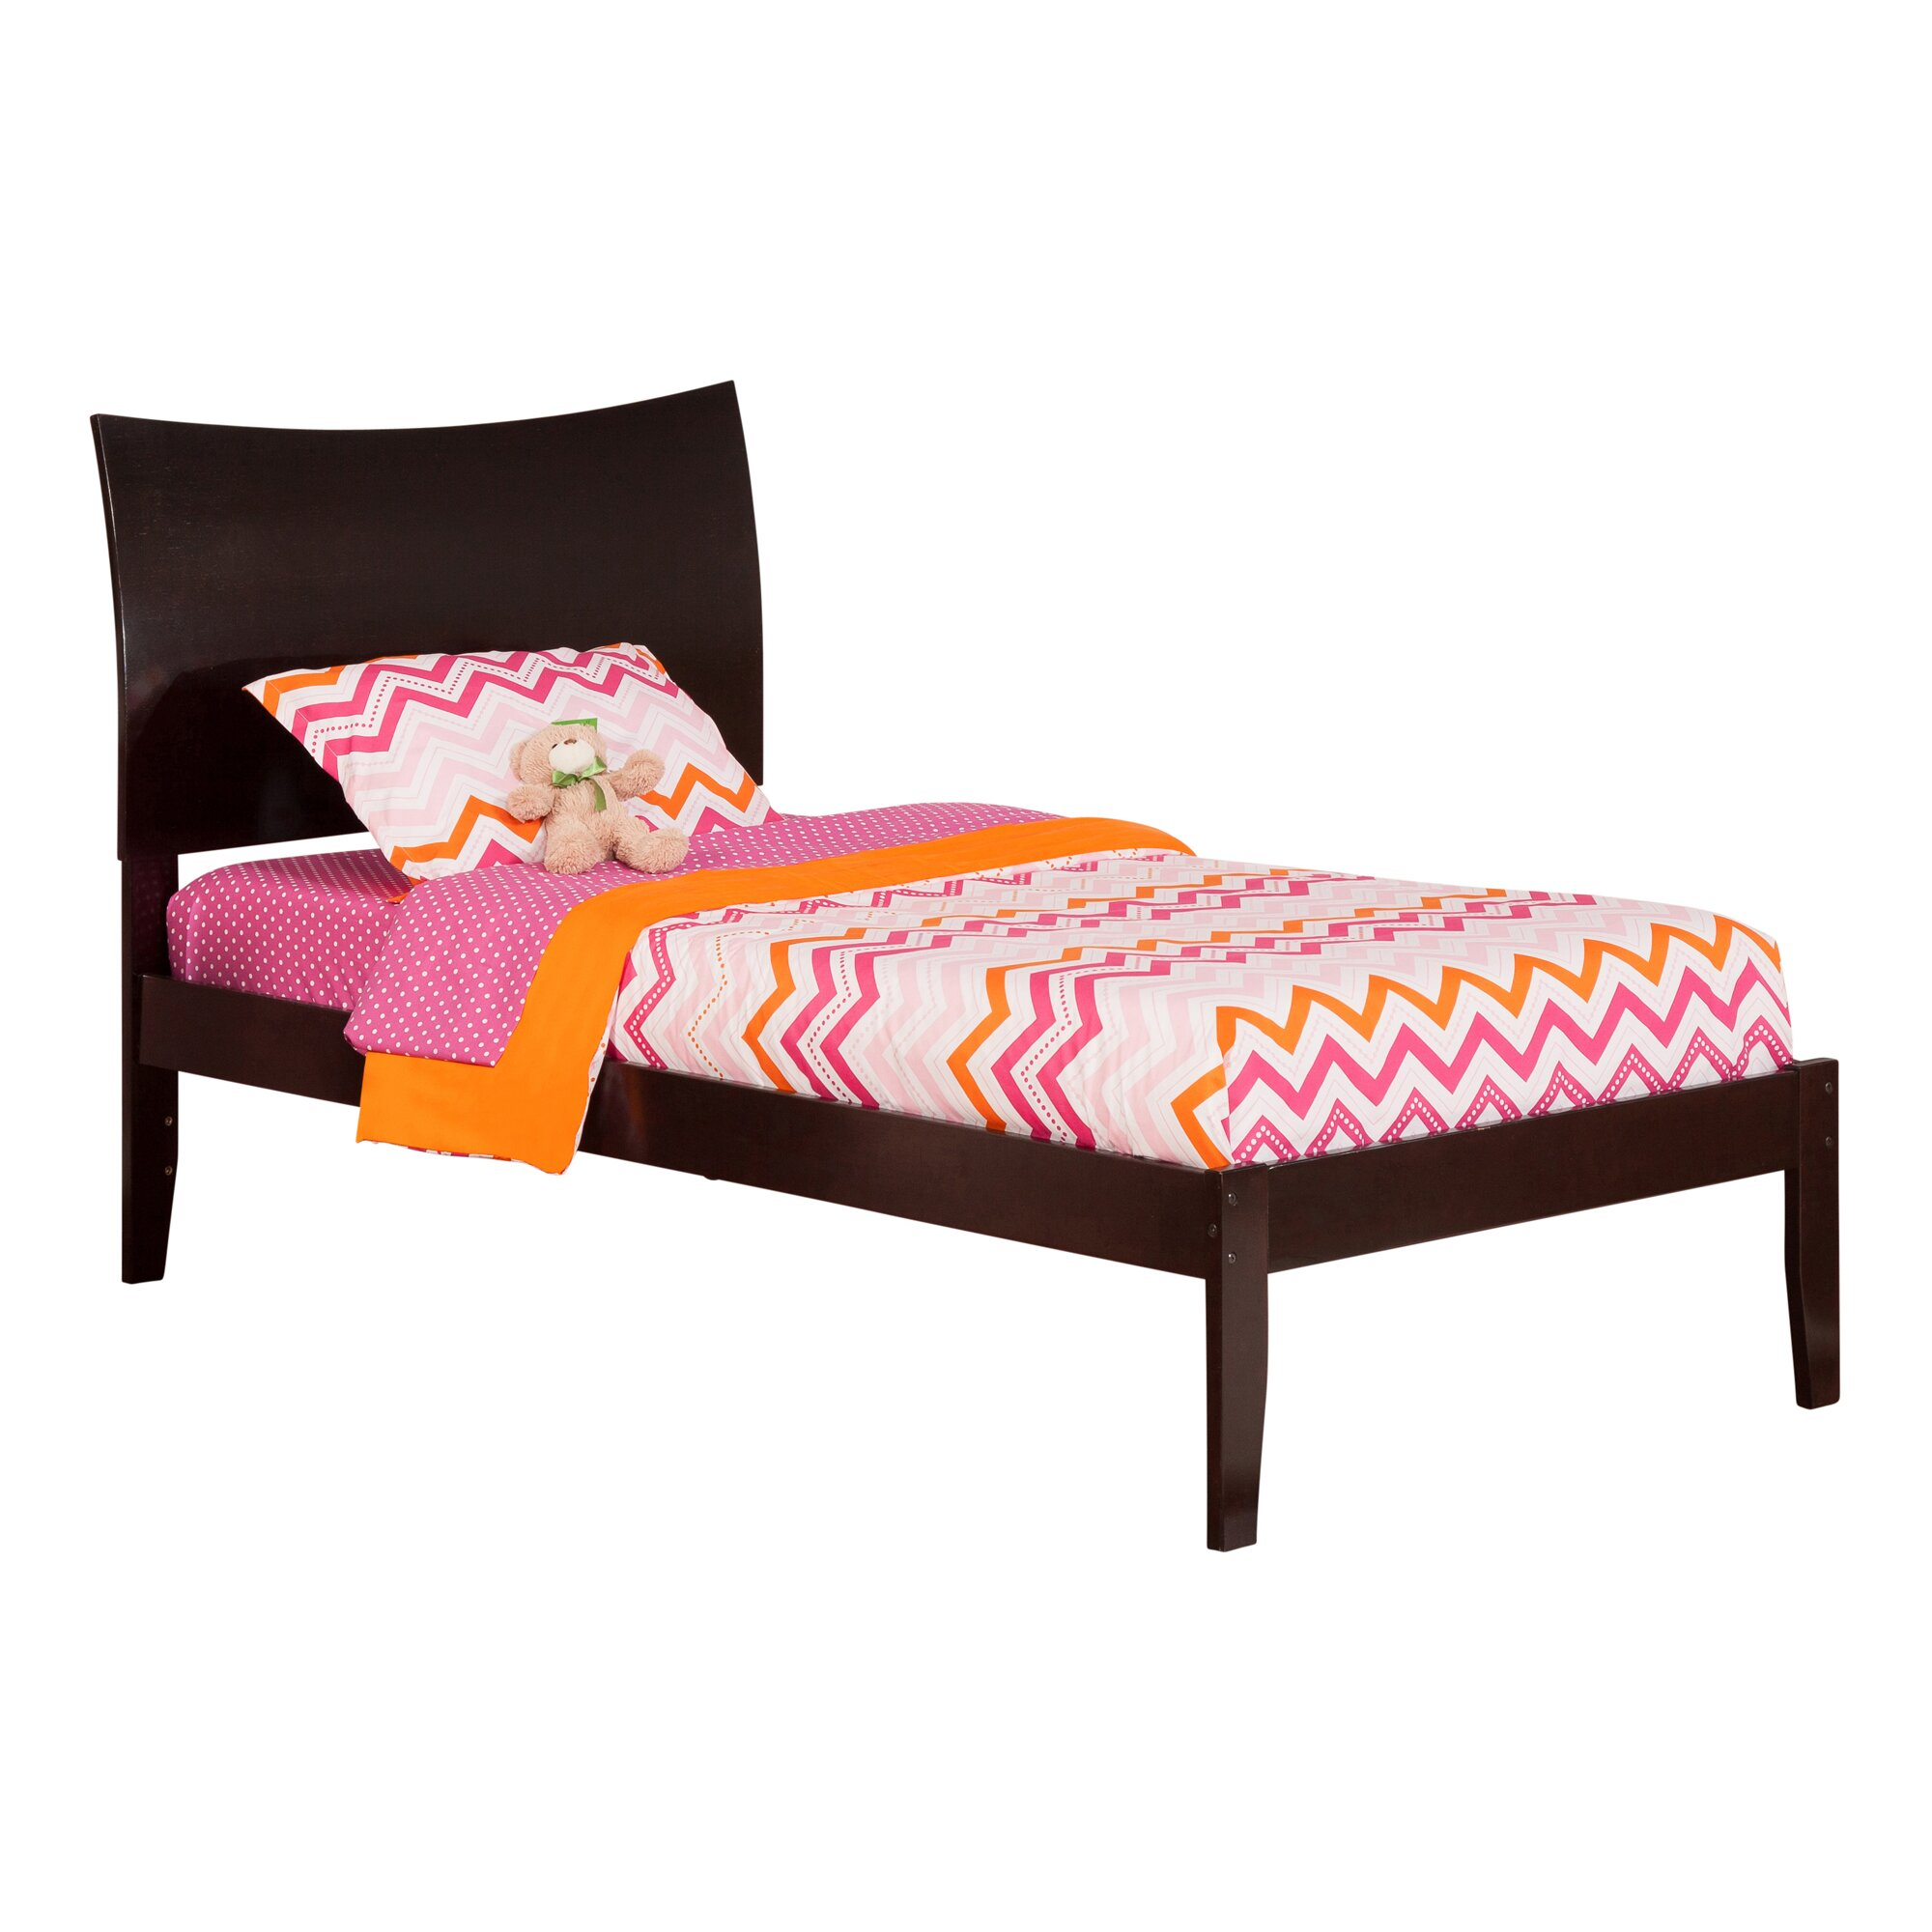 Soho Bedroom Furniture Atlantic Furniture Soho Extra Long Twin Sleigh Bed Reviews Wayfair